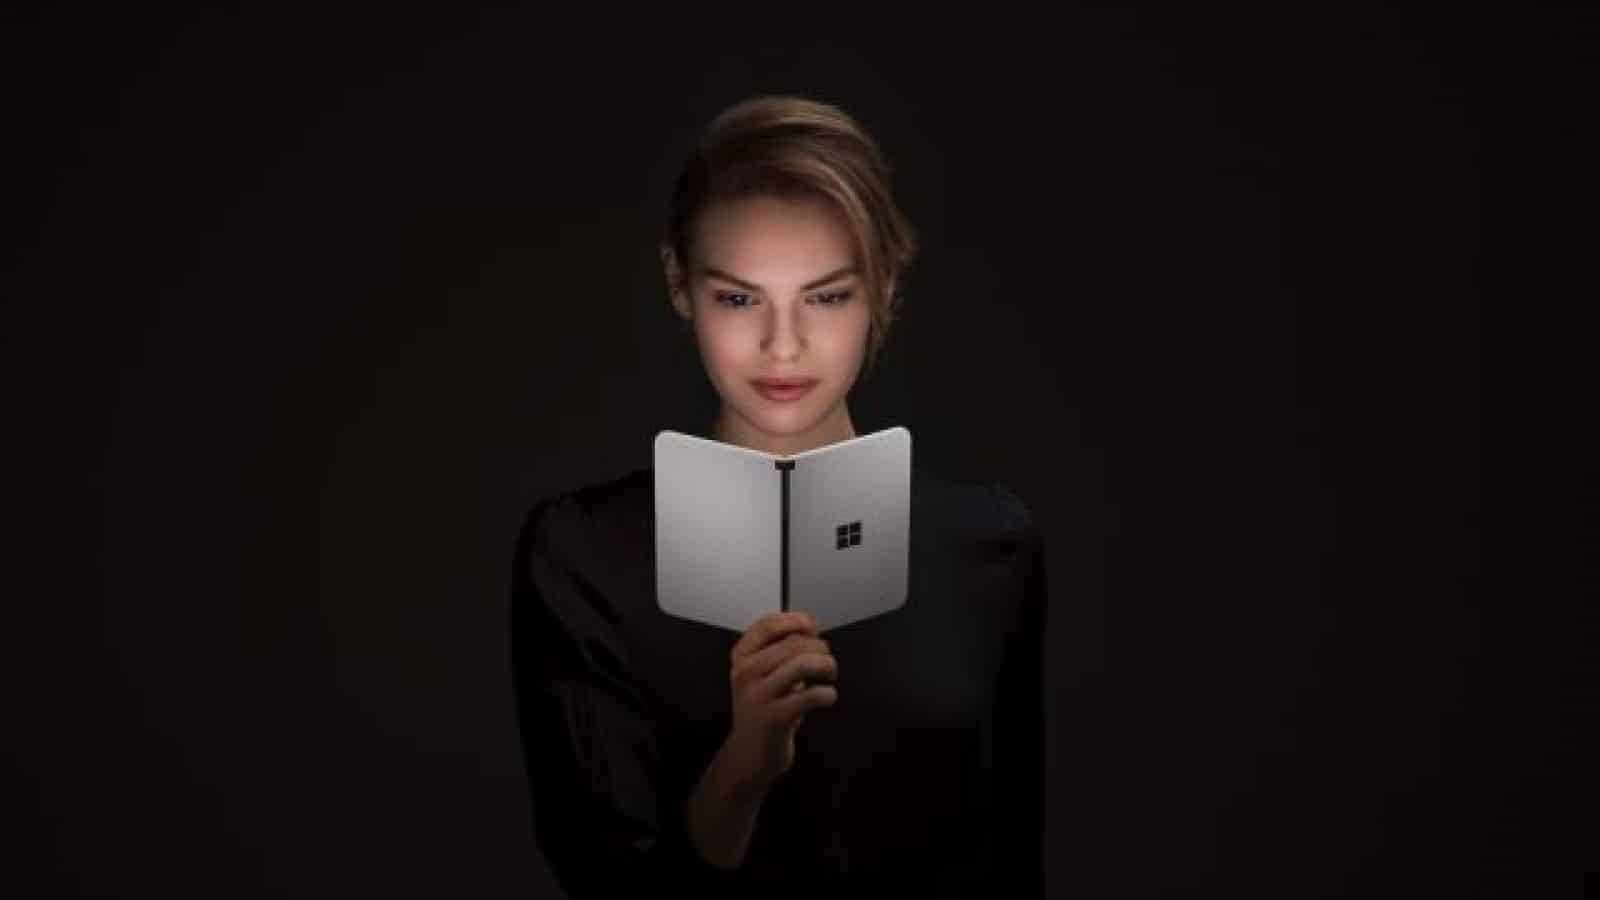 surface duo device held by woman